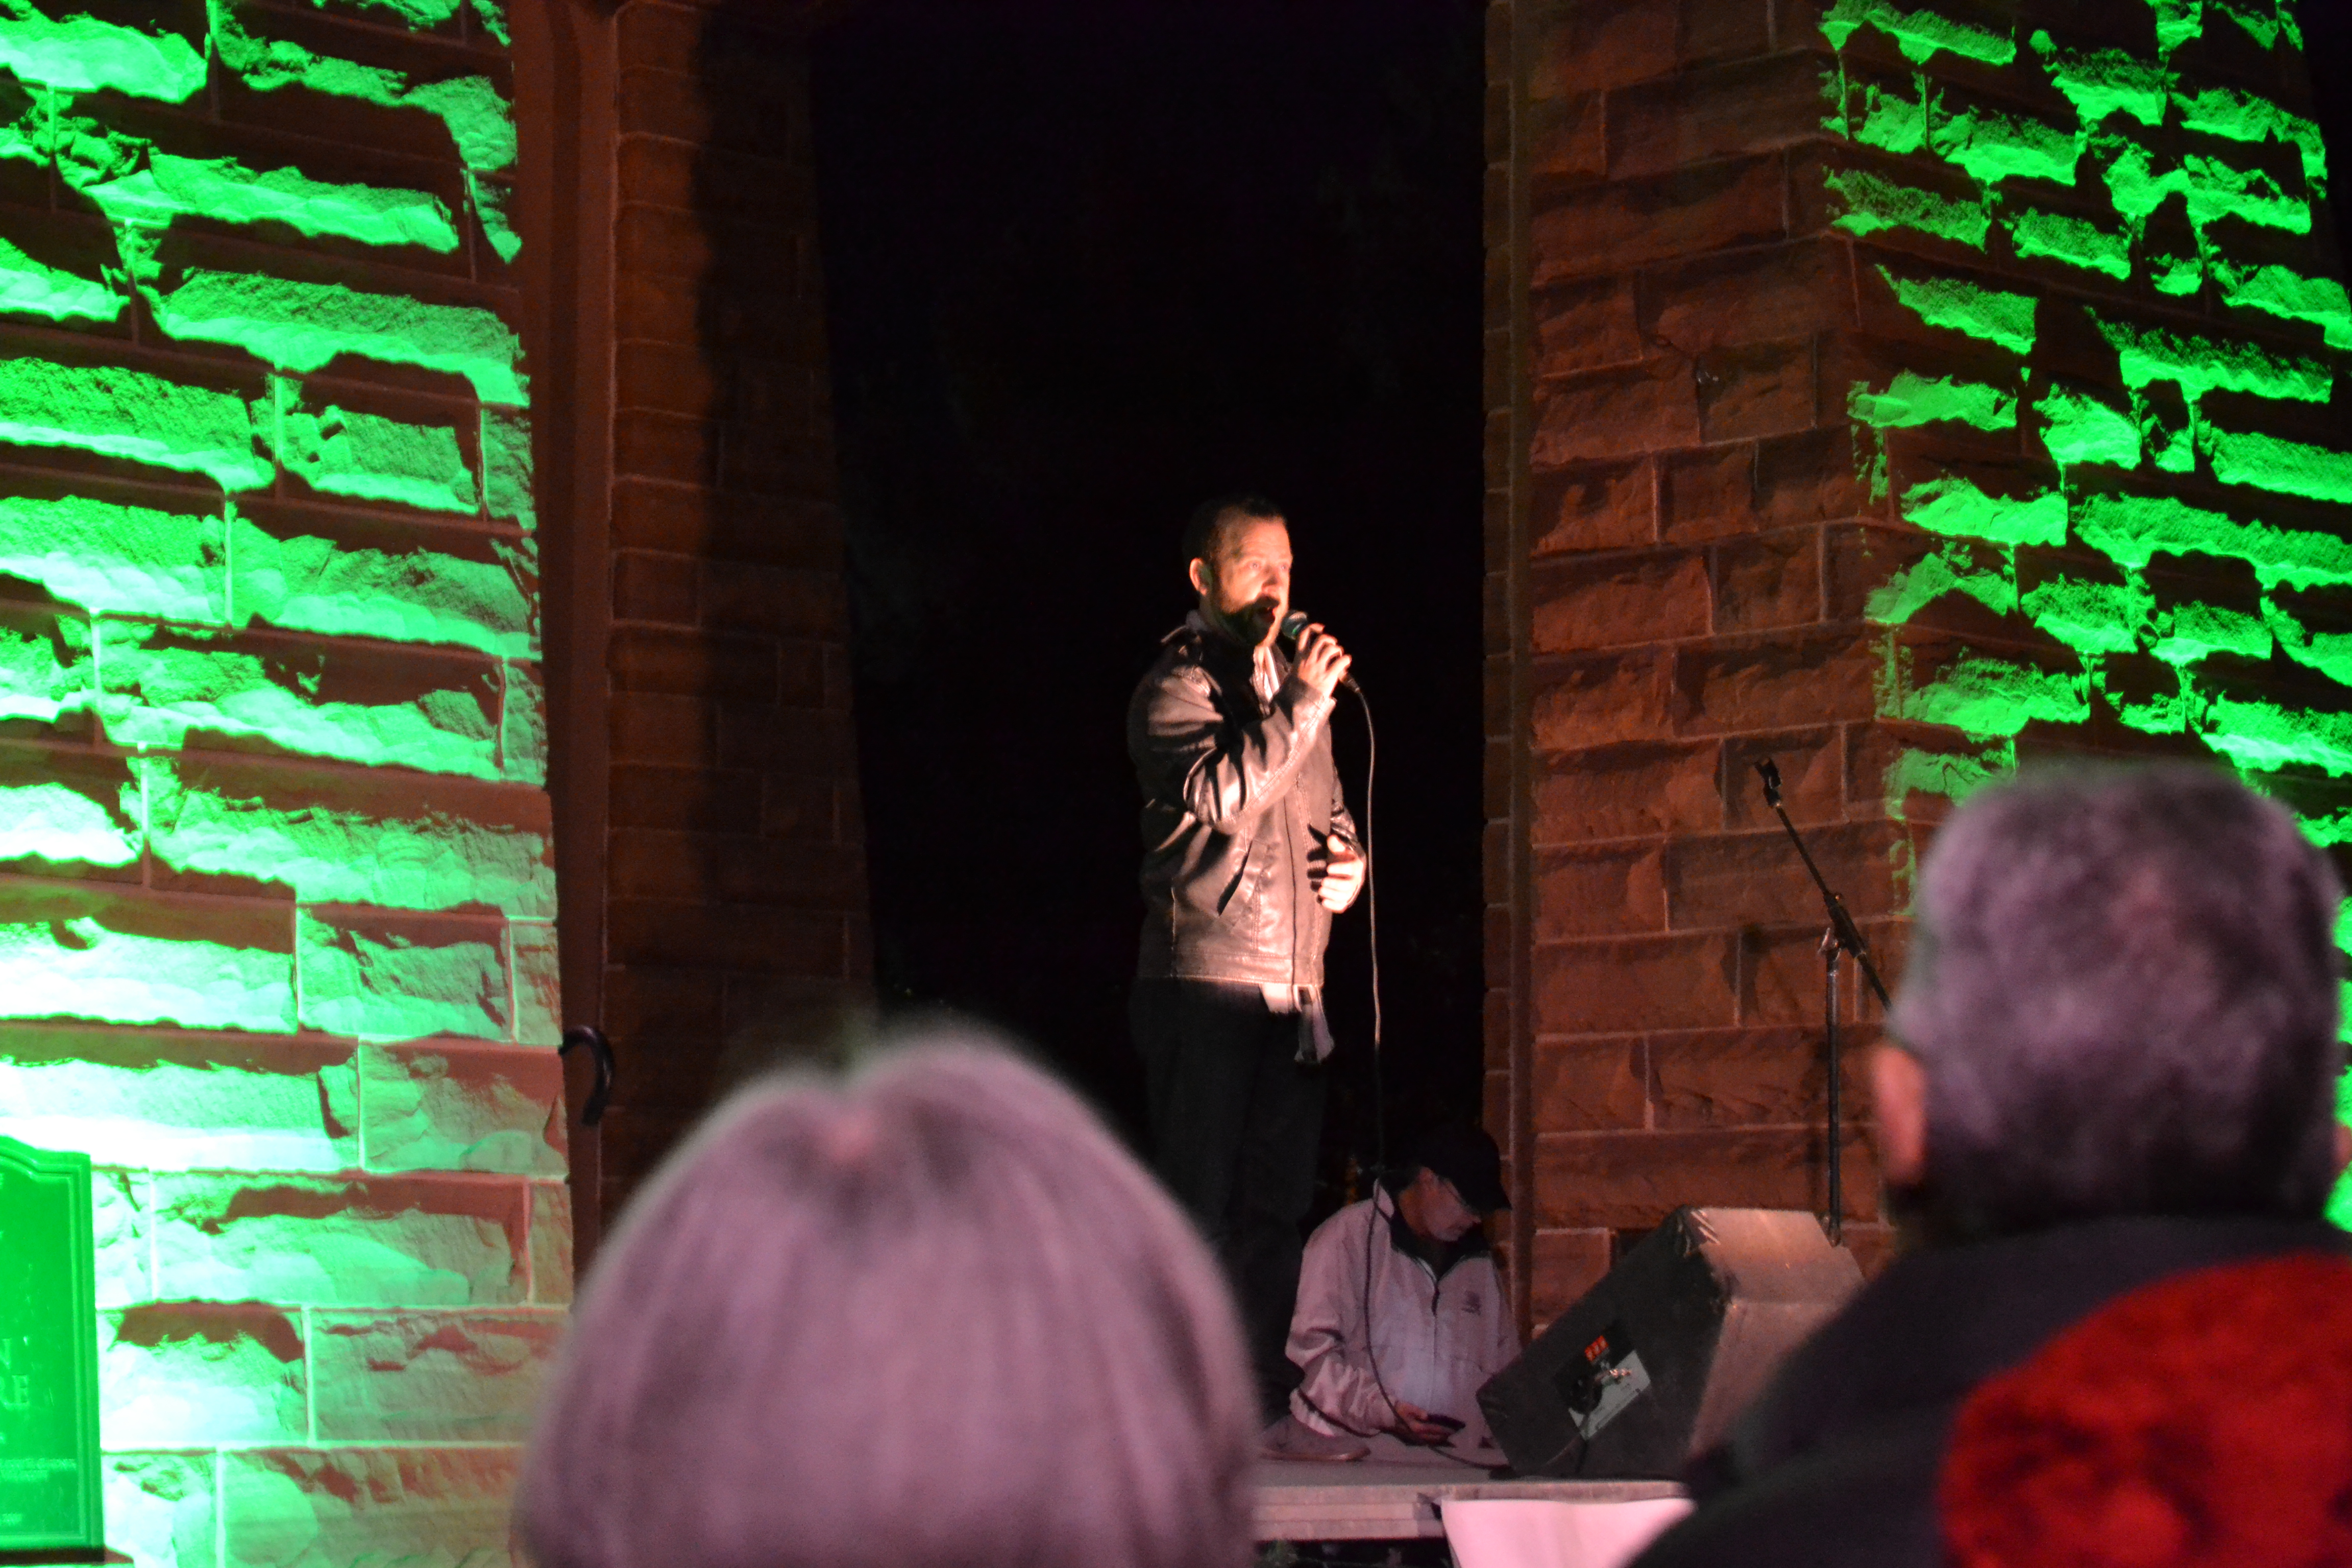 Entertainer Brodie Perry sings at the St. George Town Square Christmas Lighting, St. George, Utah, Nov. 28, 2016 | Photo by Joseph Witham, St. George News